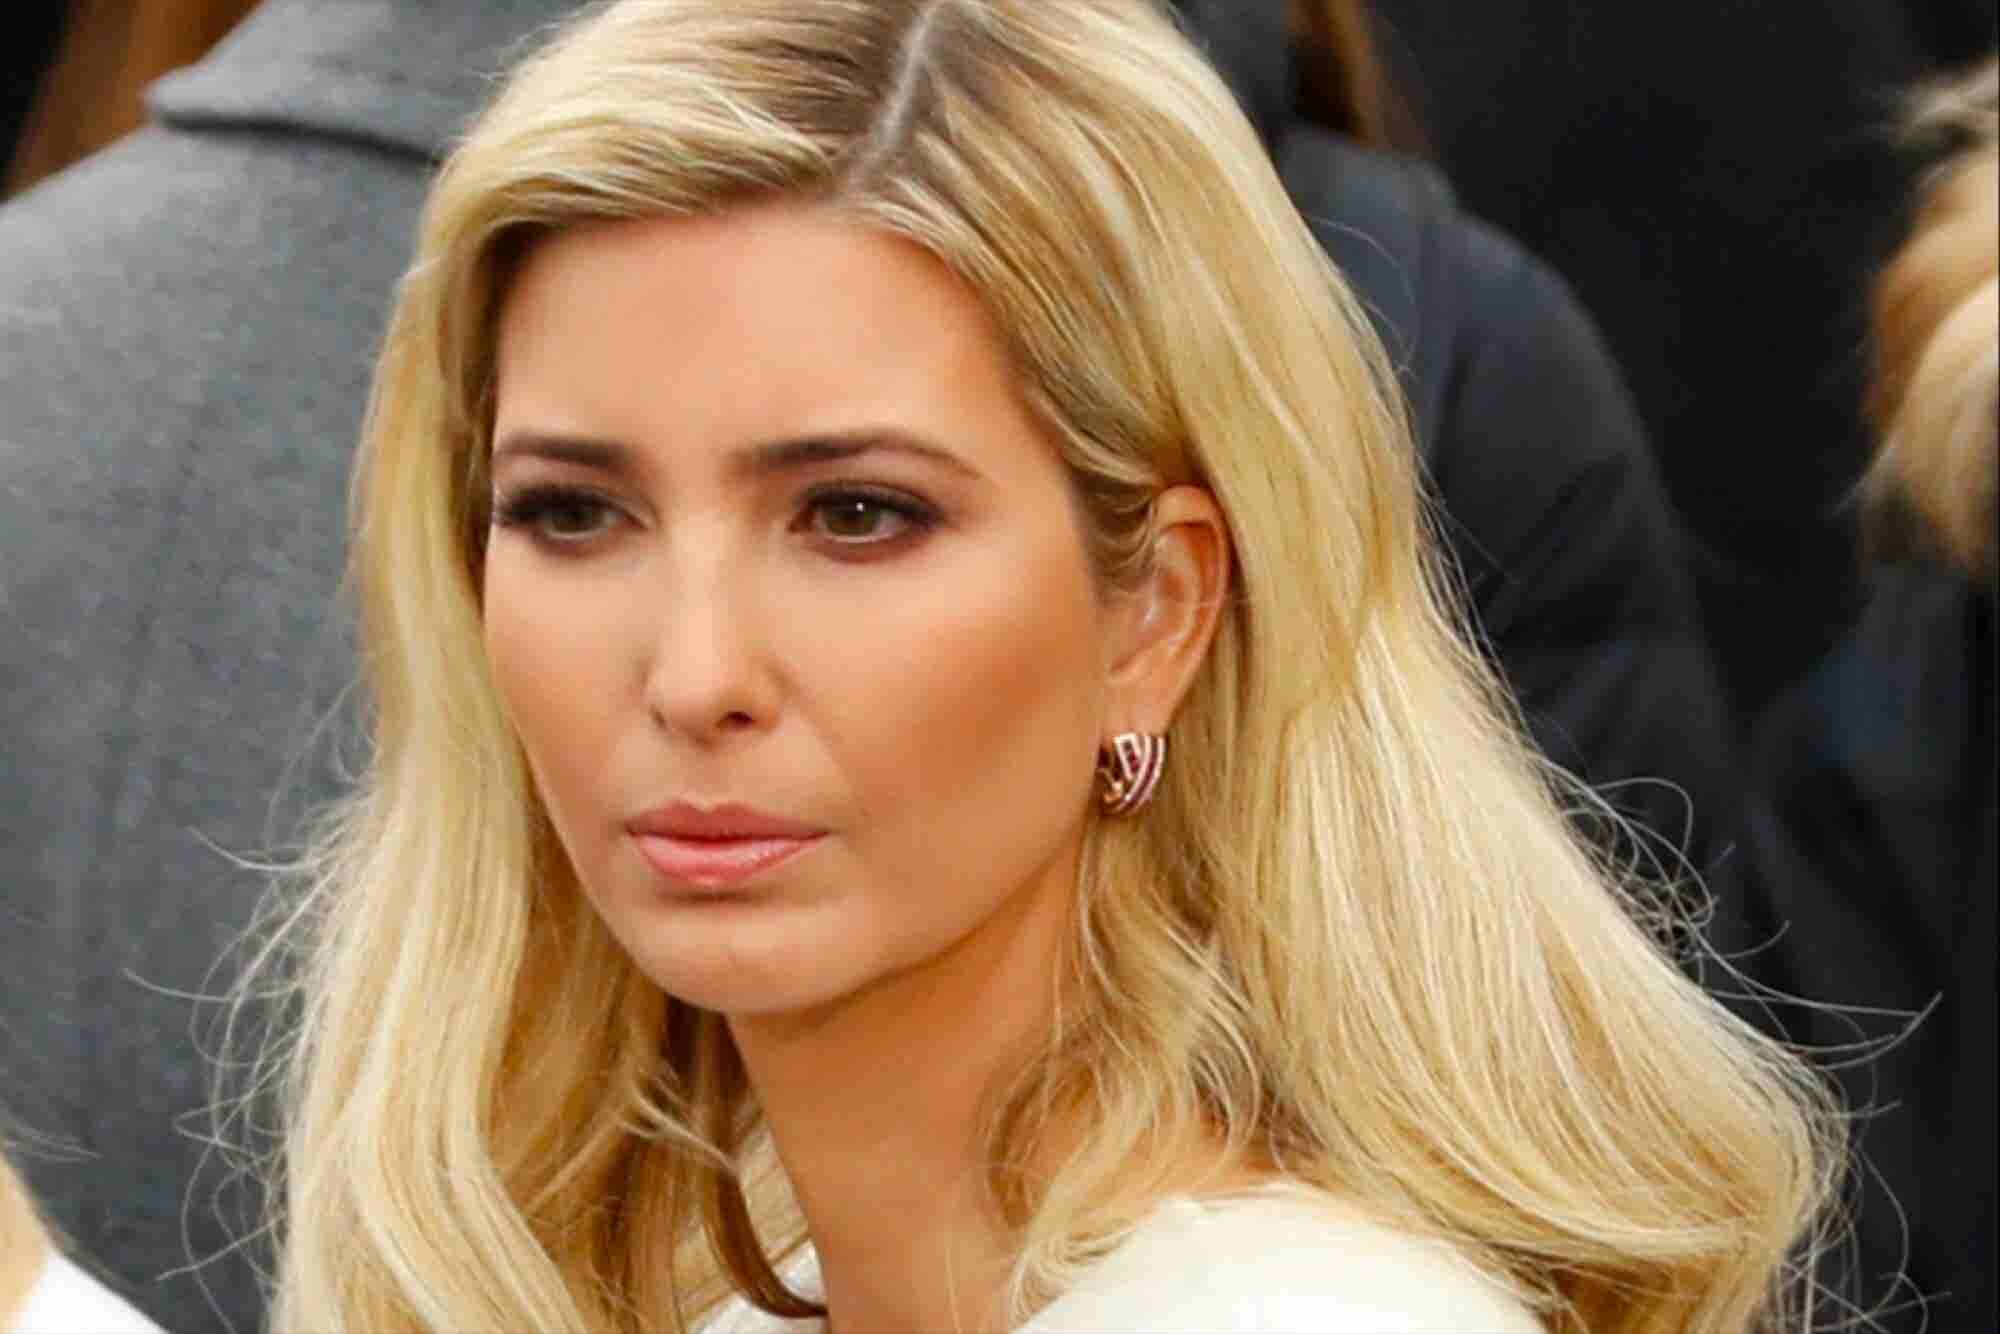 Nordstrom Has Officially Cut Ties With Ivanka Trump's Brand